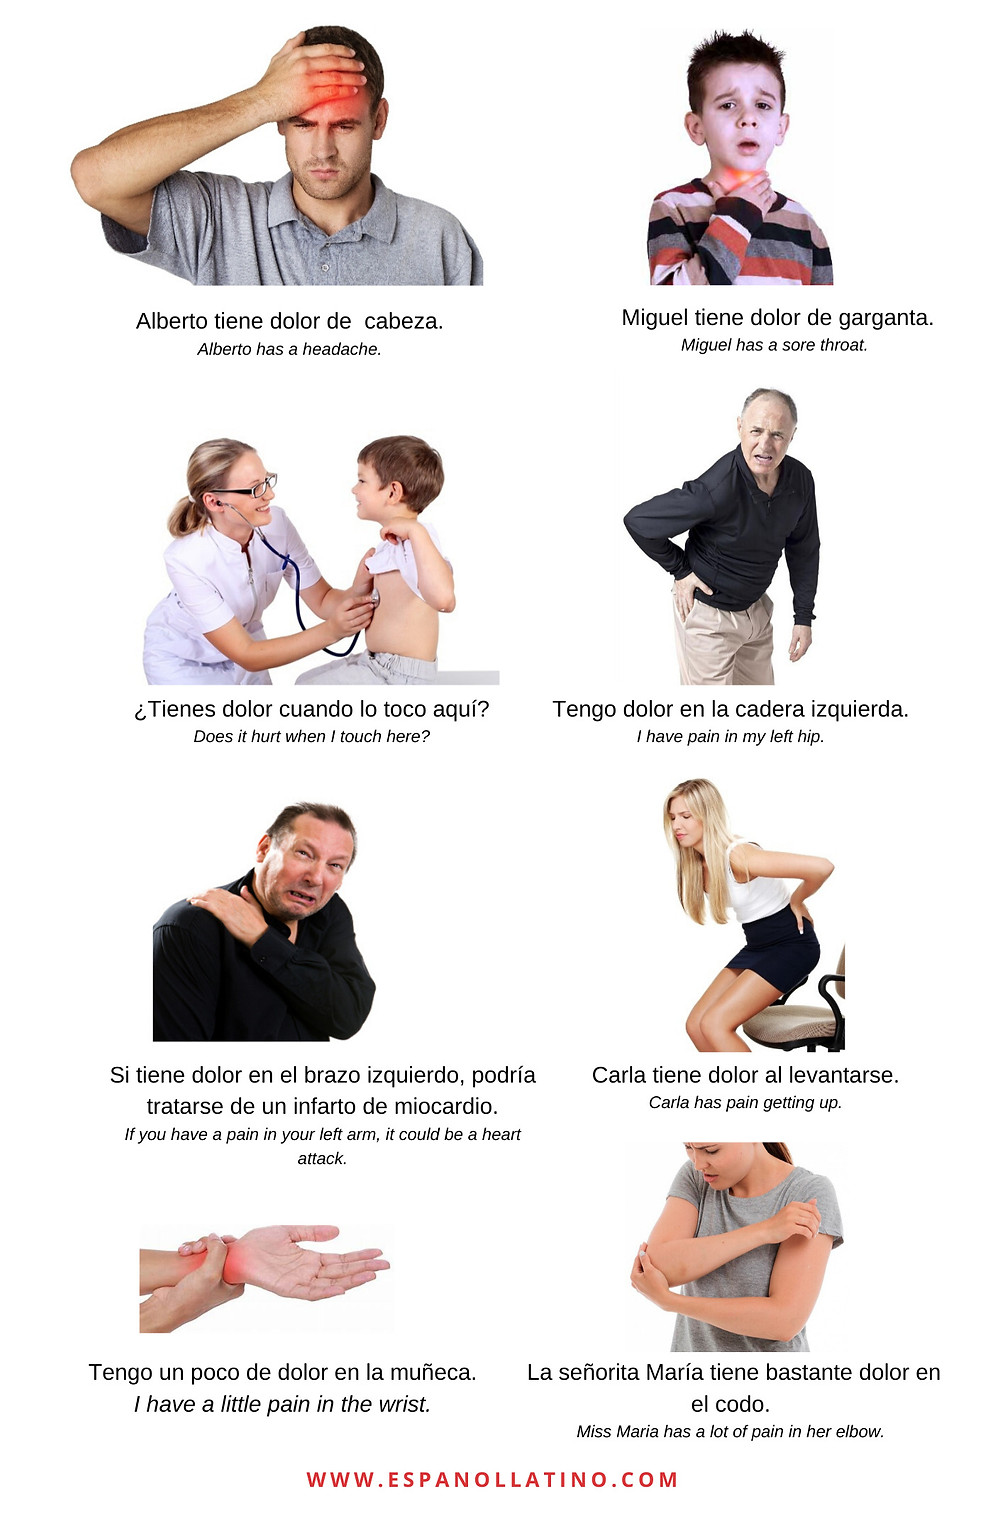 How to express a minor illness to a doctor in Spanish.